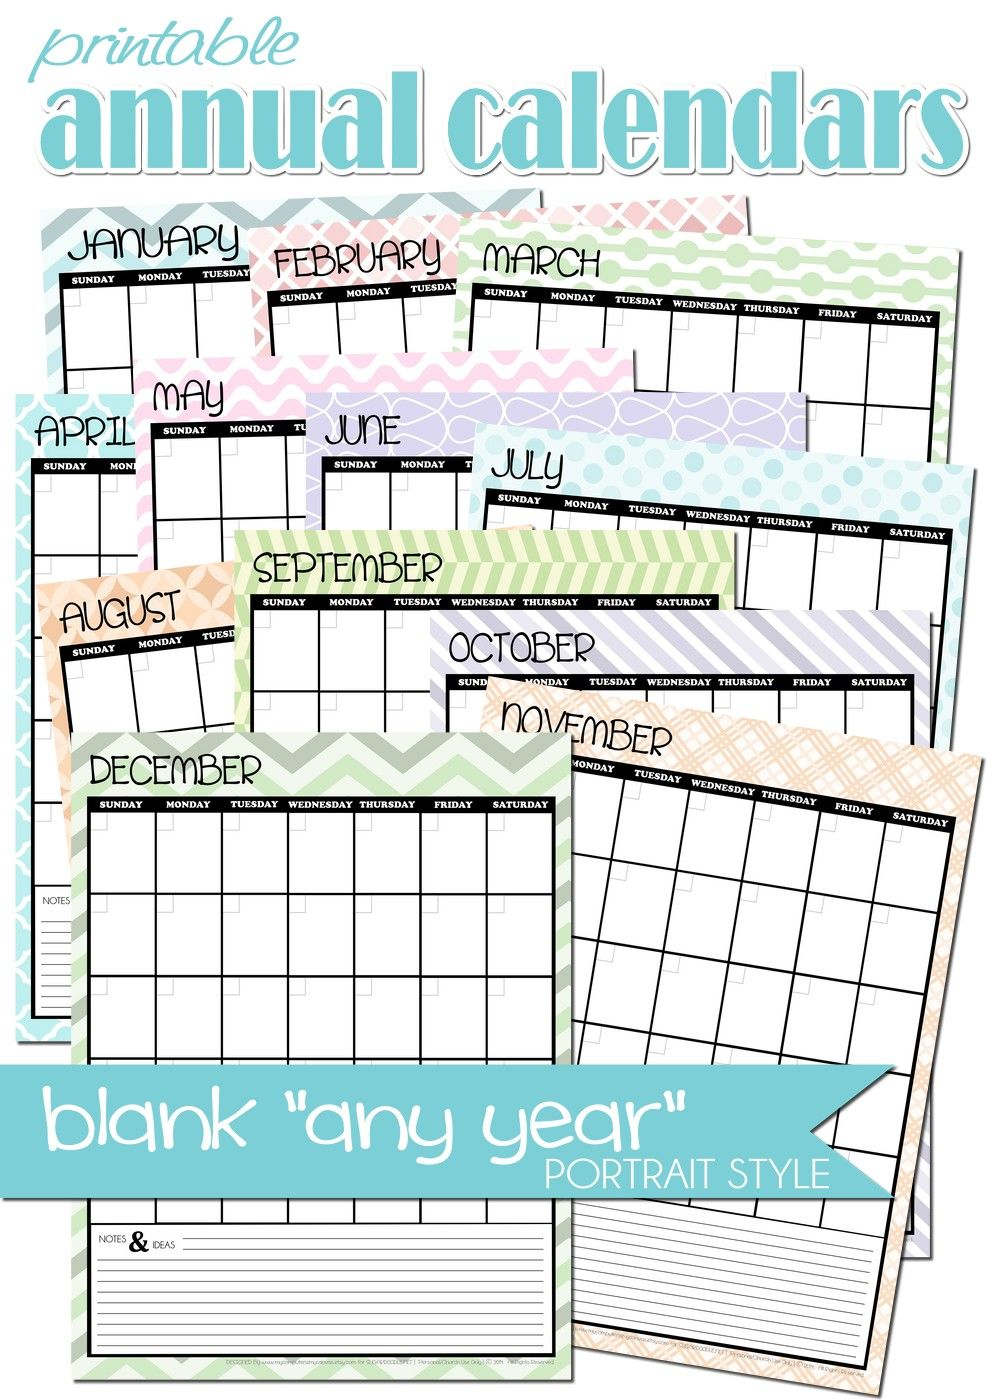 Printable Annual Calendars  Free  Calendar Printables